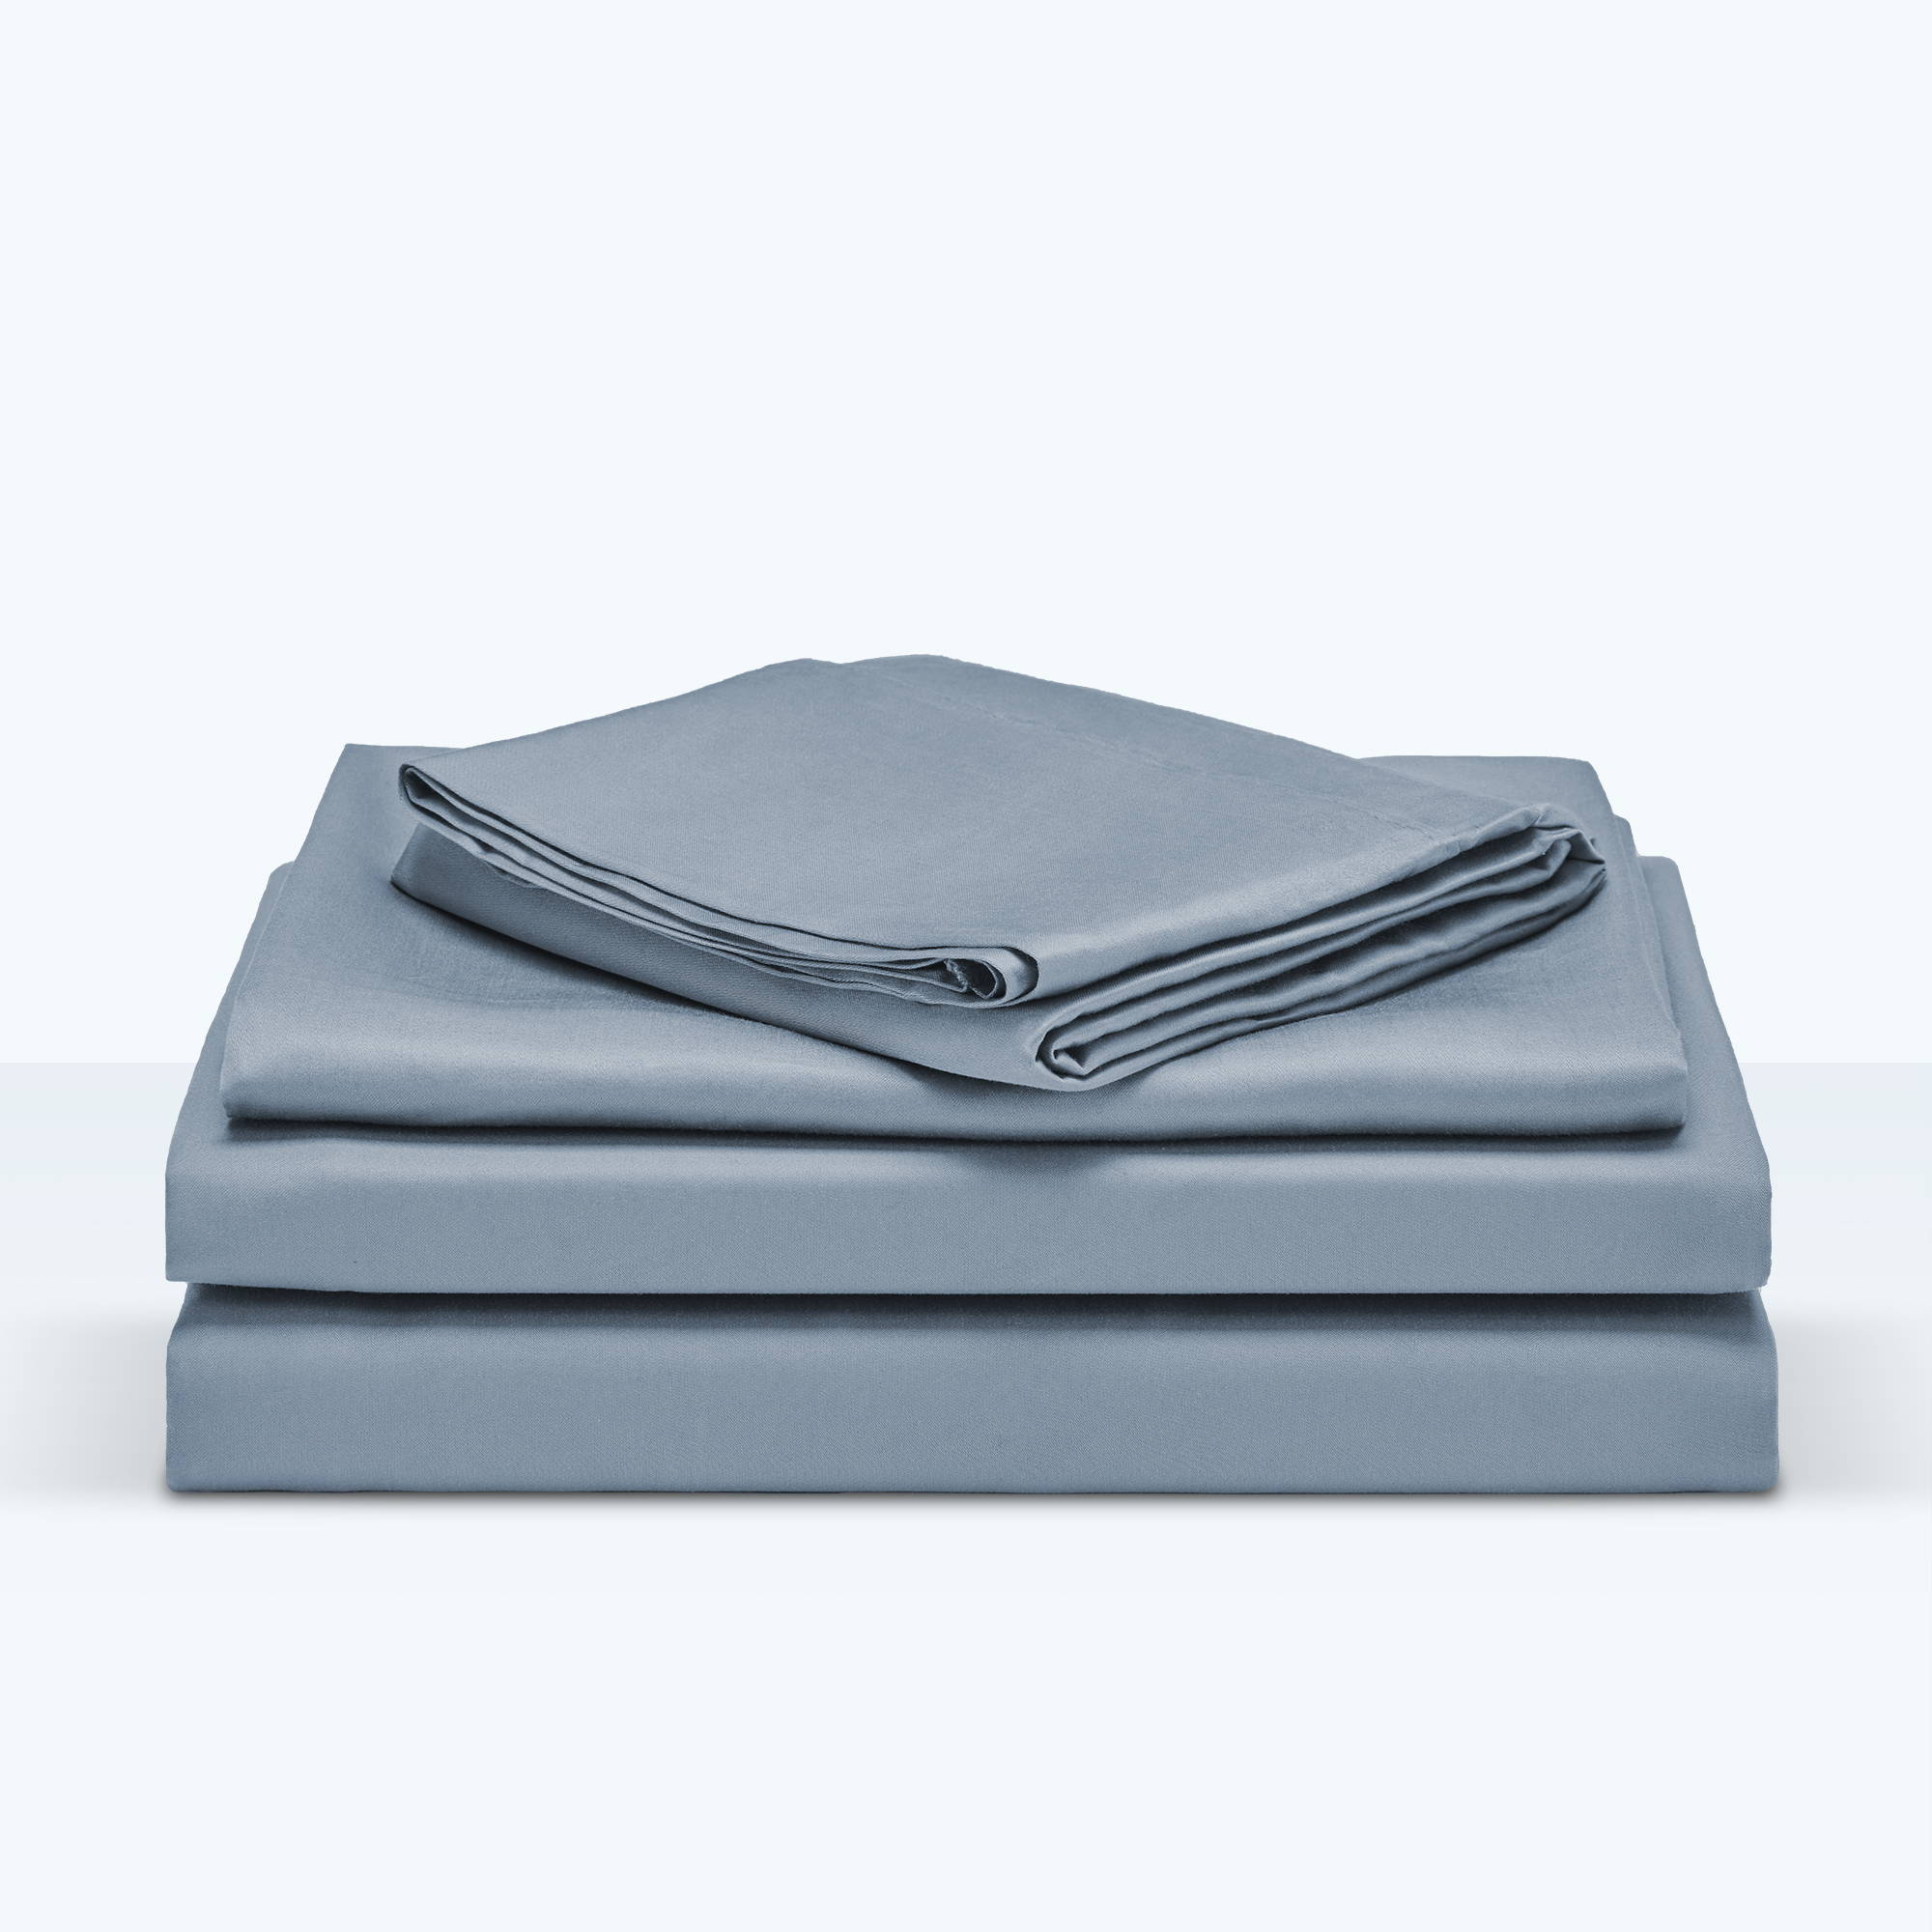 sleep zone bedding website store products collections cottonnest pure cotton sheet set pink grey gray